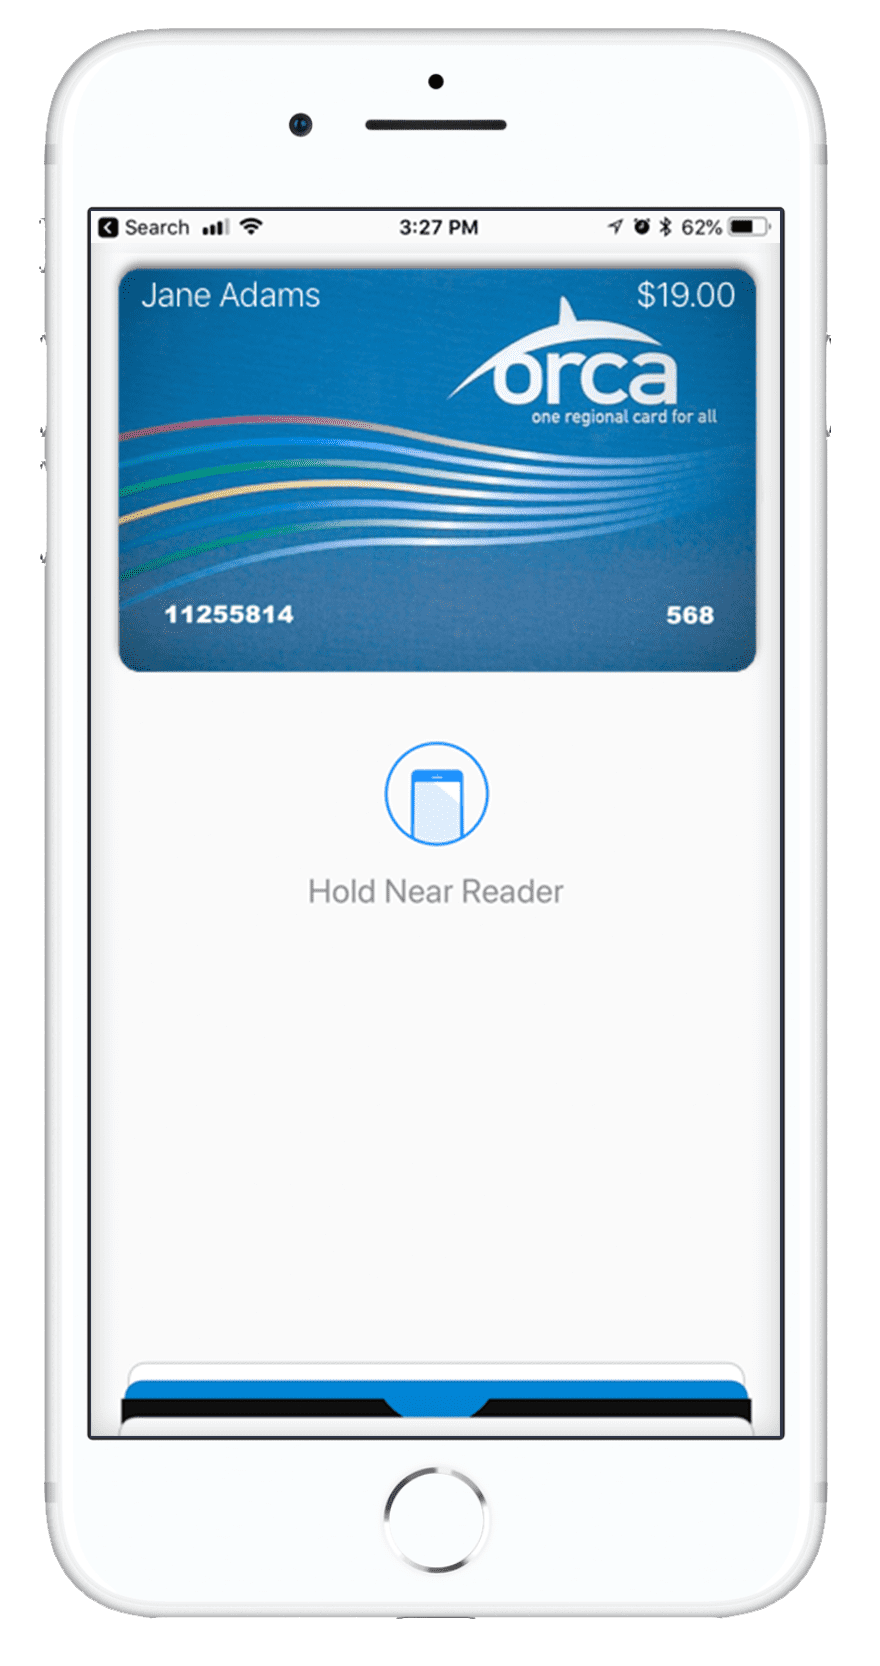 Orca Card 2 using Apple Wallet Pay